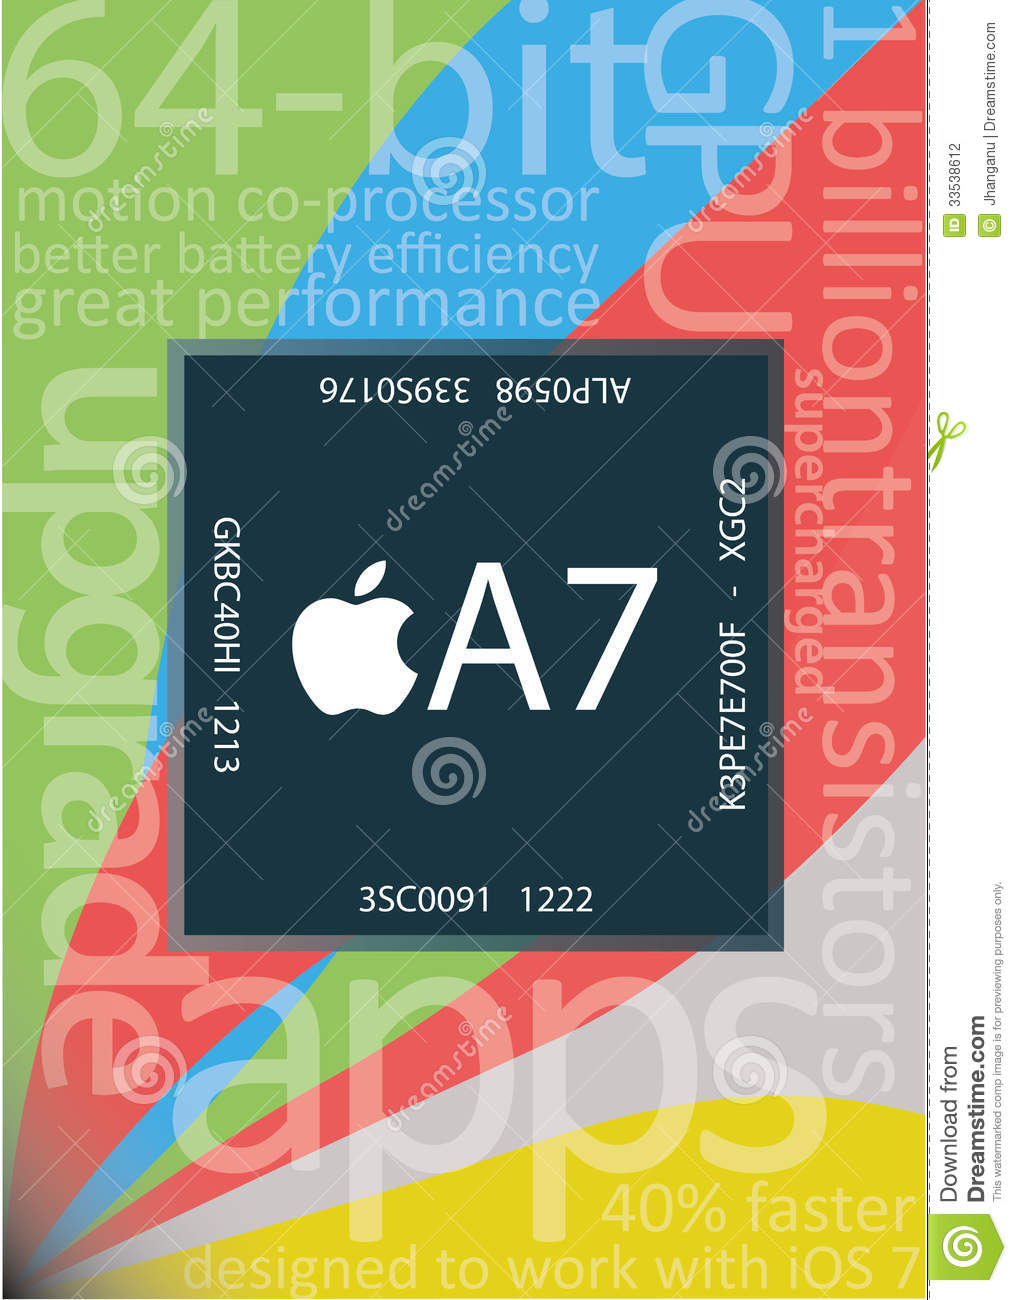 New Apple A7 chip on Ipad Air and Iphone